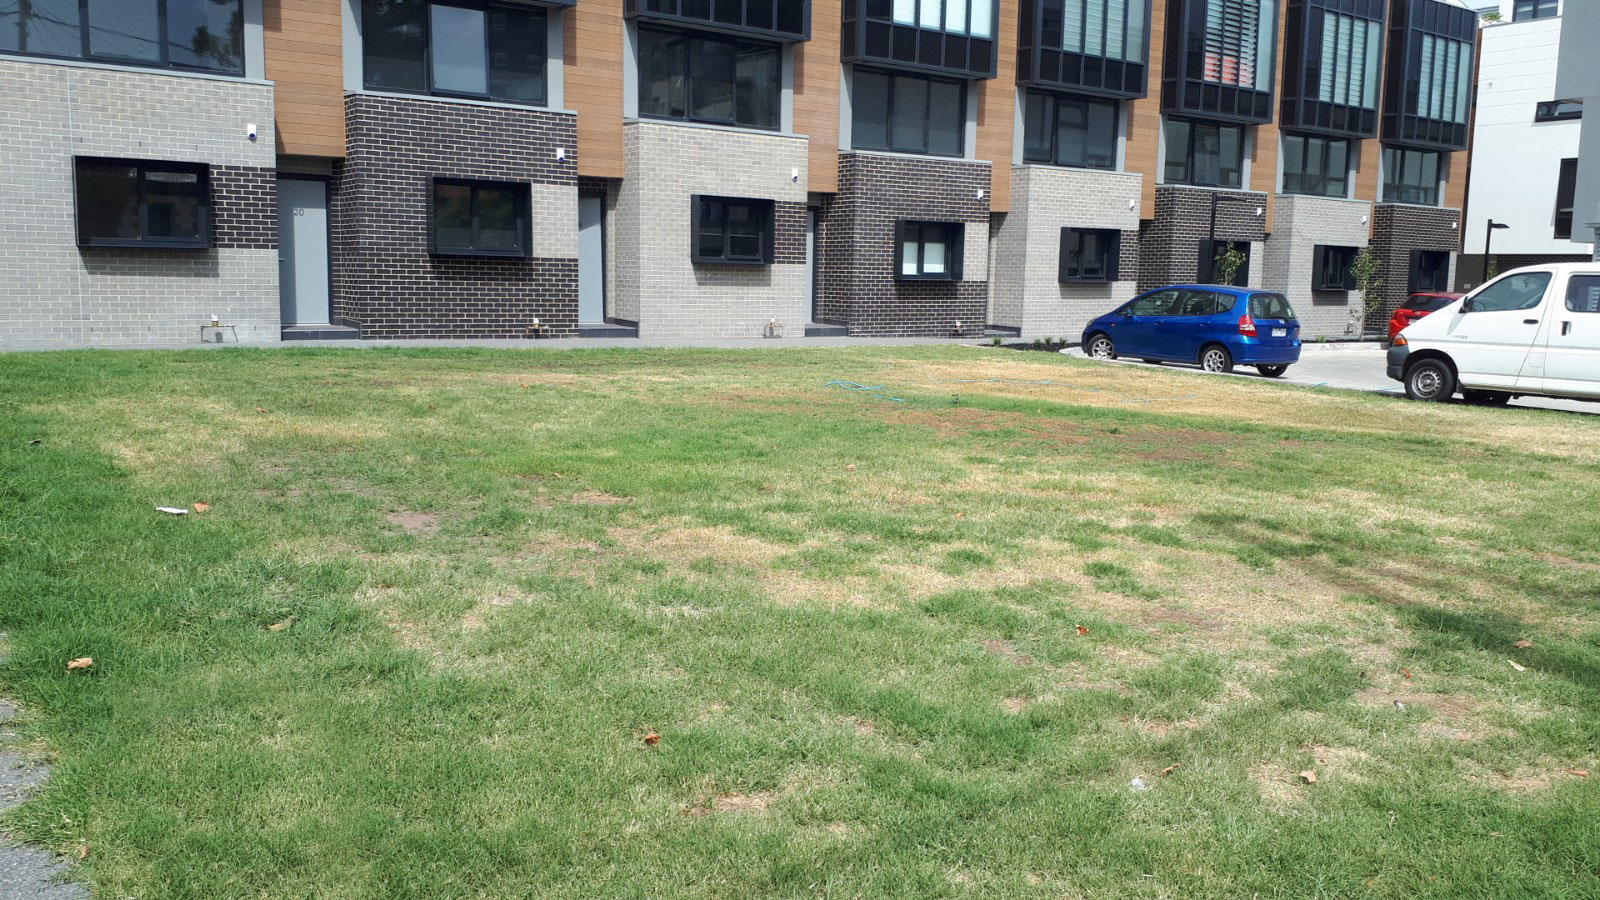 A grass-covered vacant lot on Reid Street